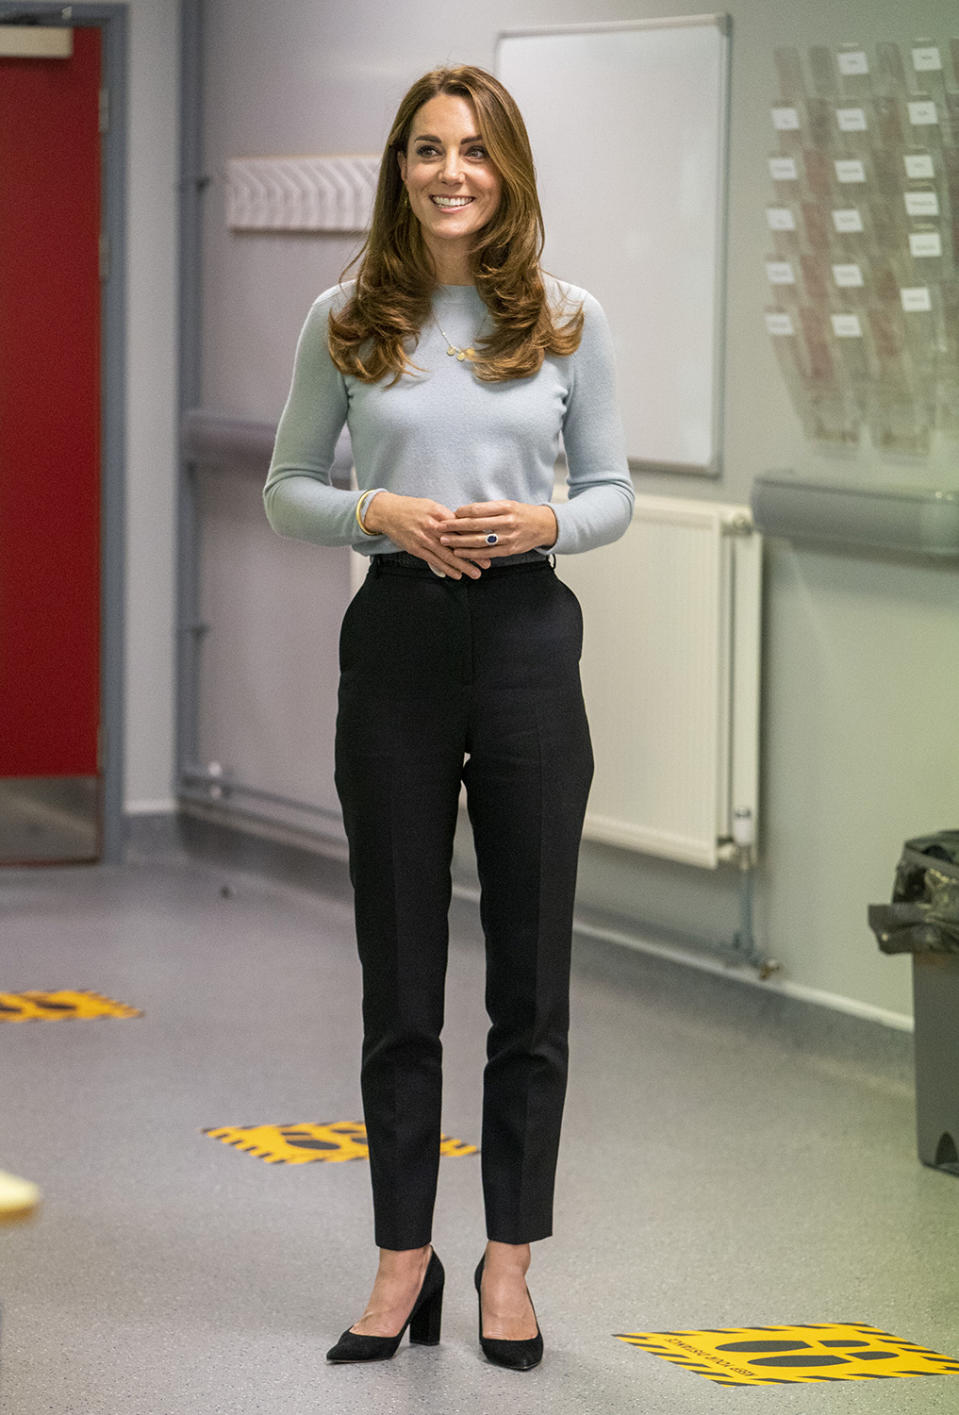 Kate Middleton looked polished in an aquamarine cashmere crewneck sweater by Massimo Dutti as she met with students and faculty at the University of Derby. Image via Getty Images.